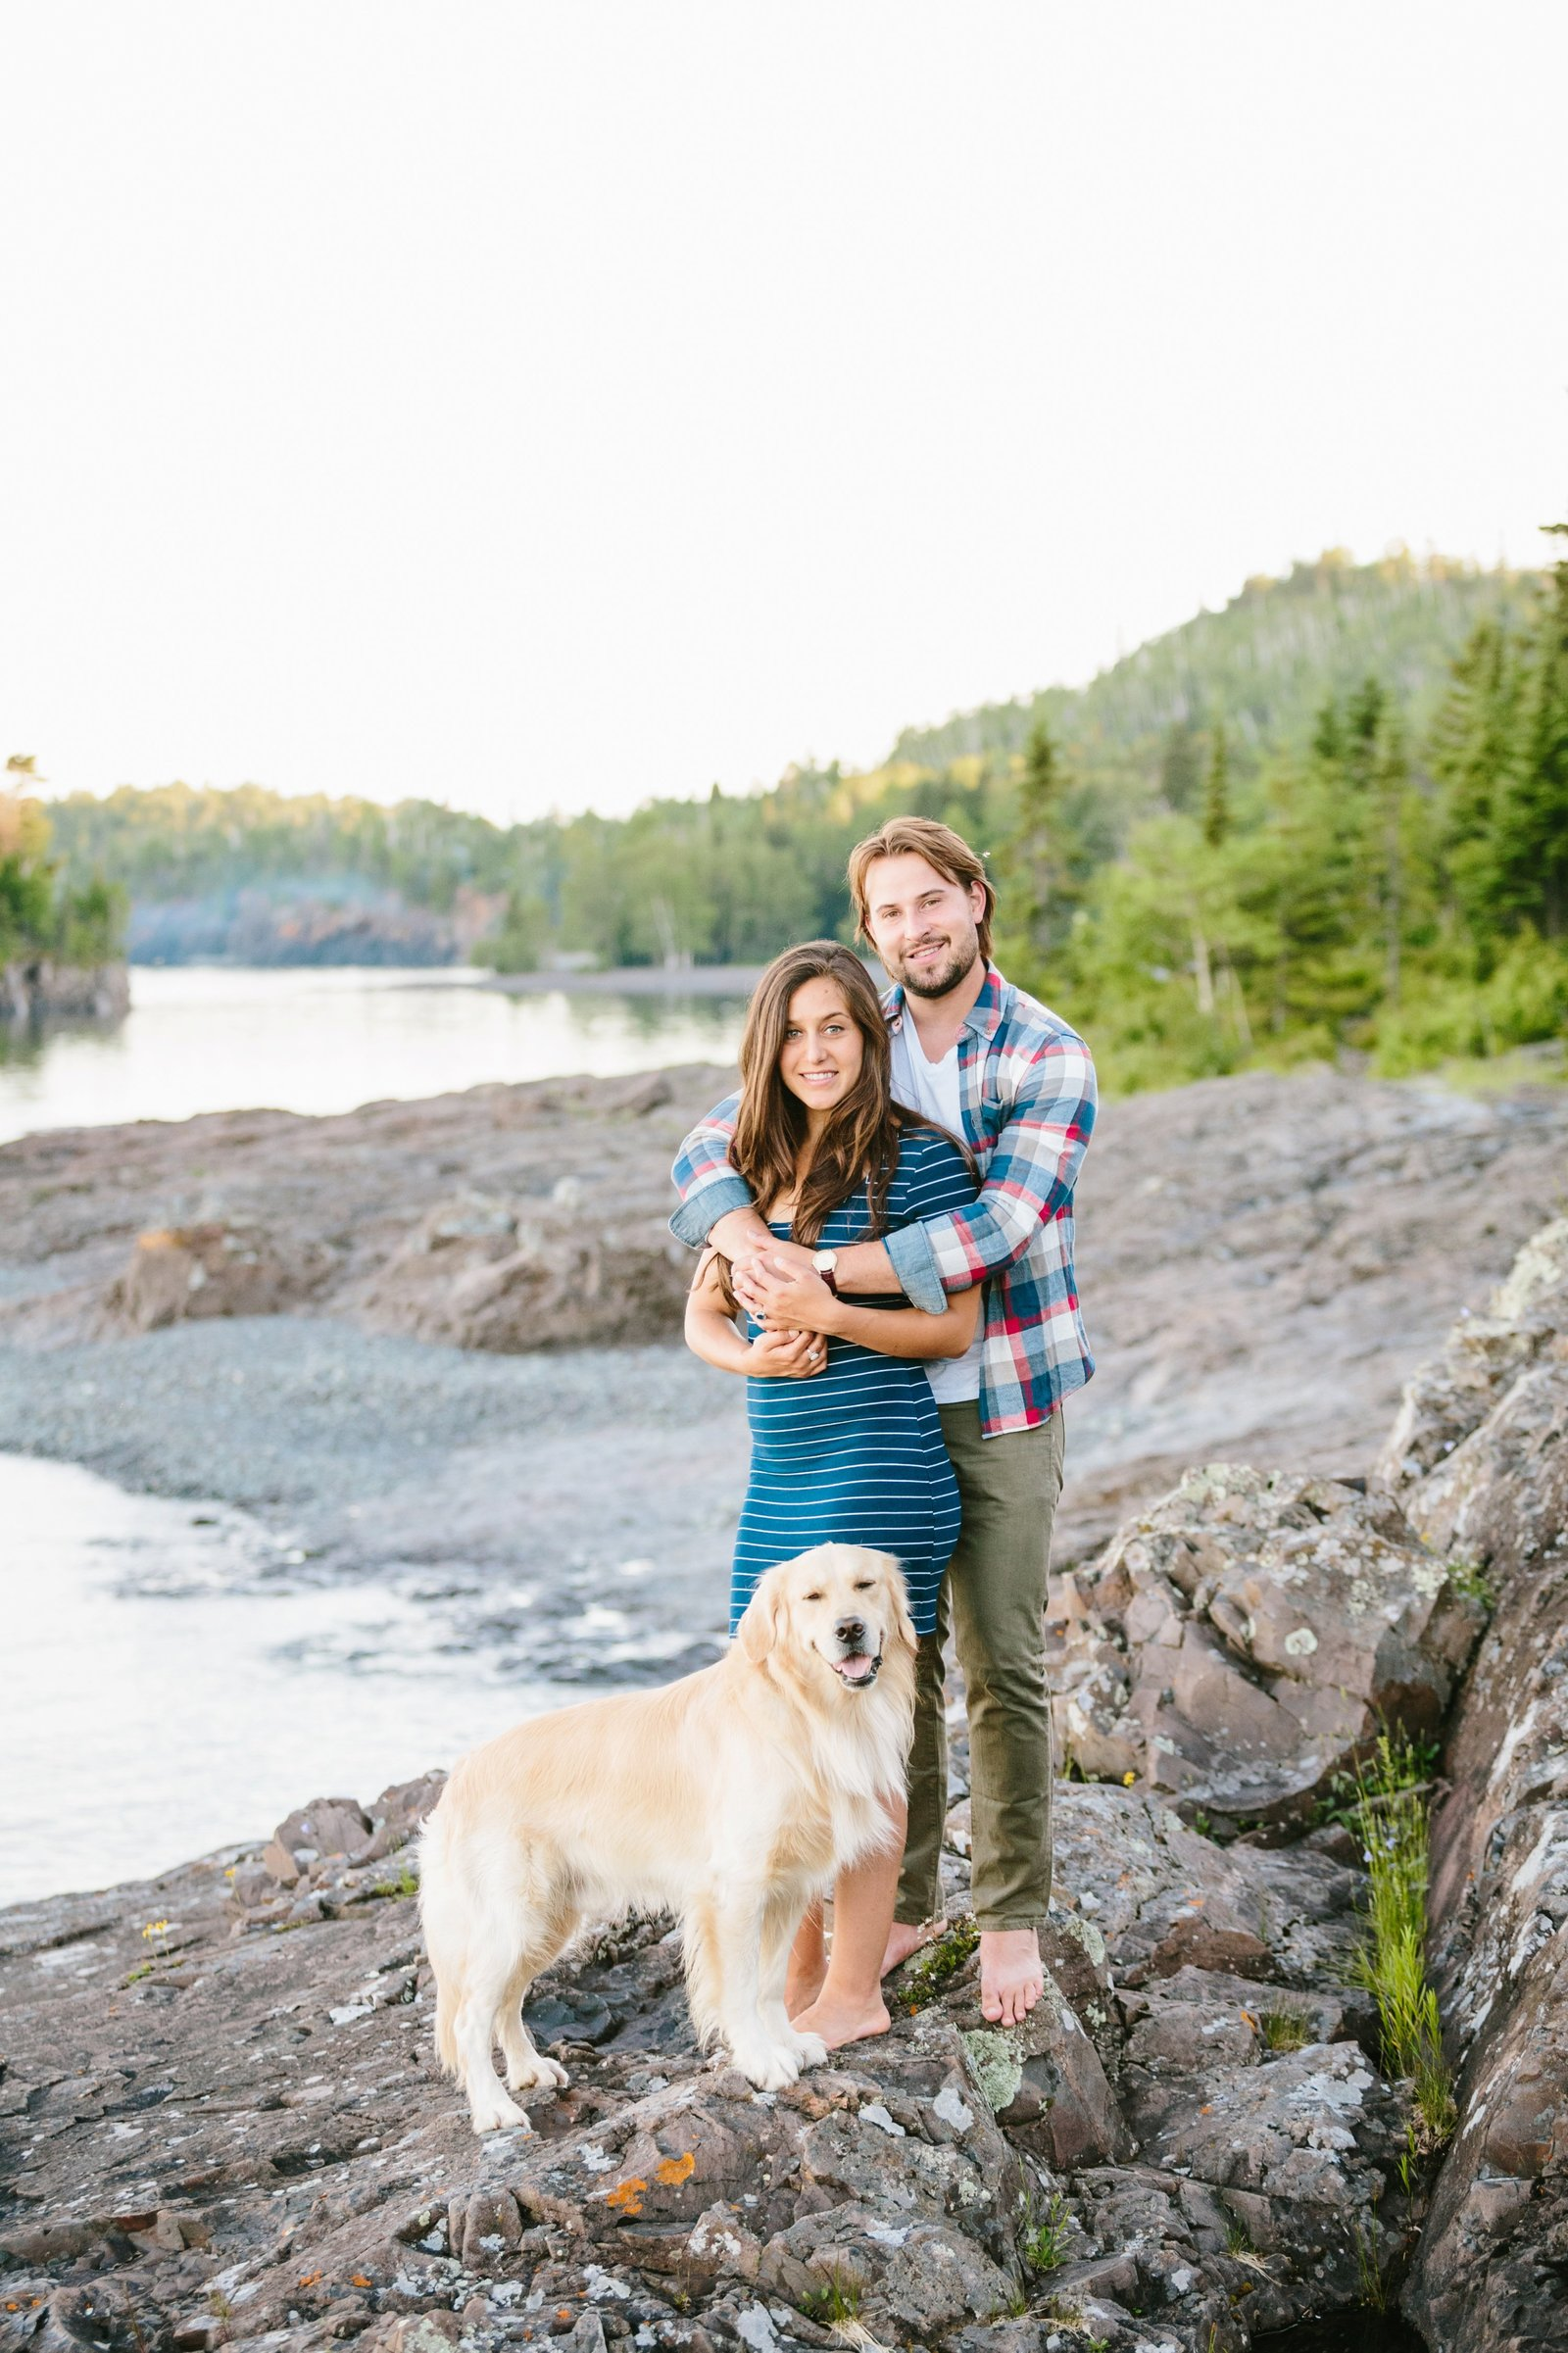 Engagement Photos-Jodee Debes Photography-055